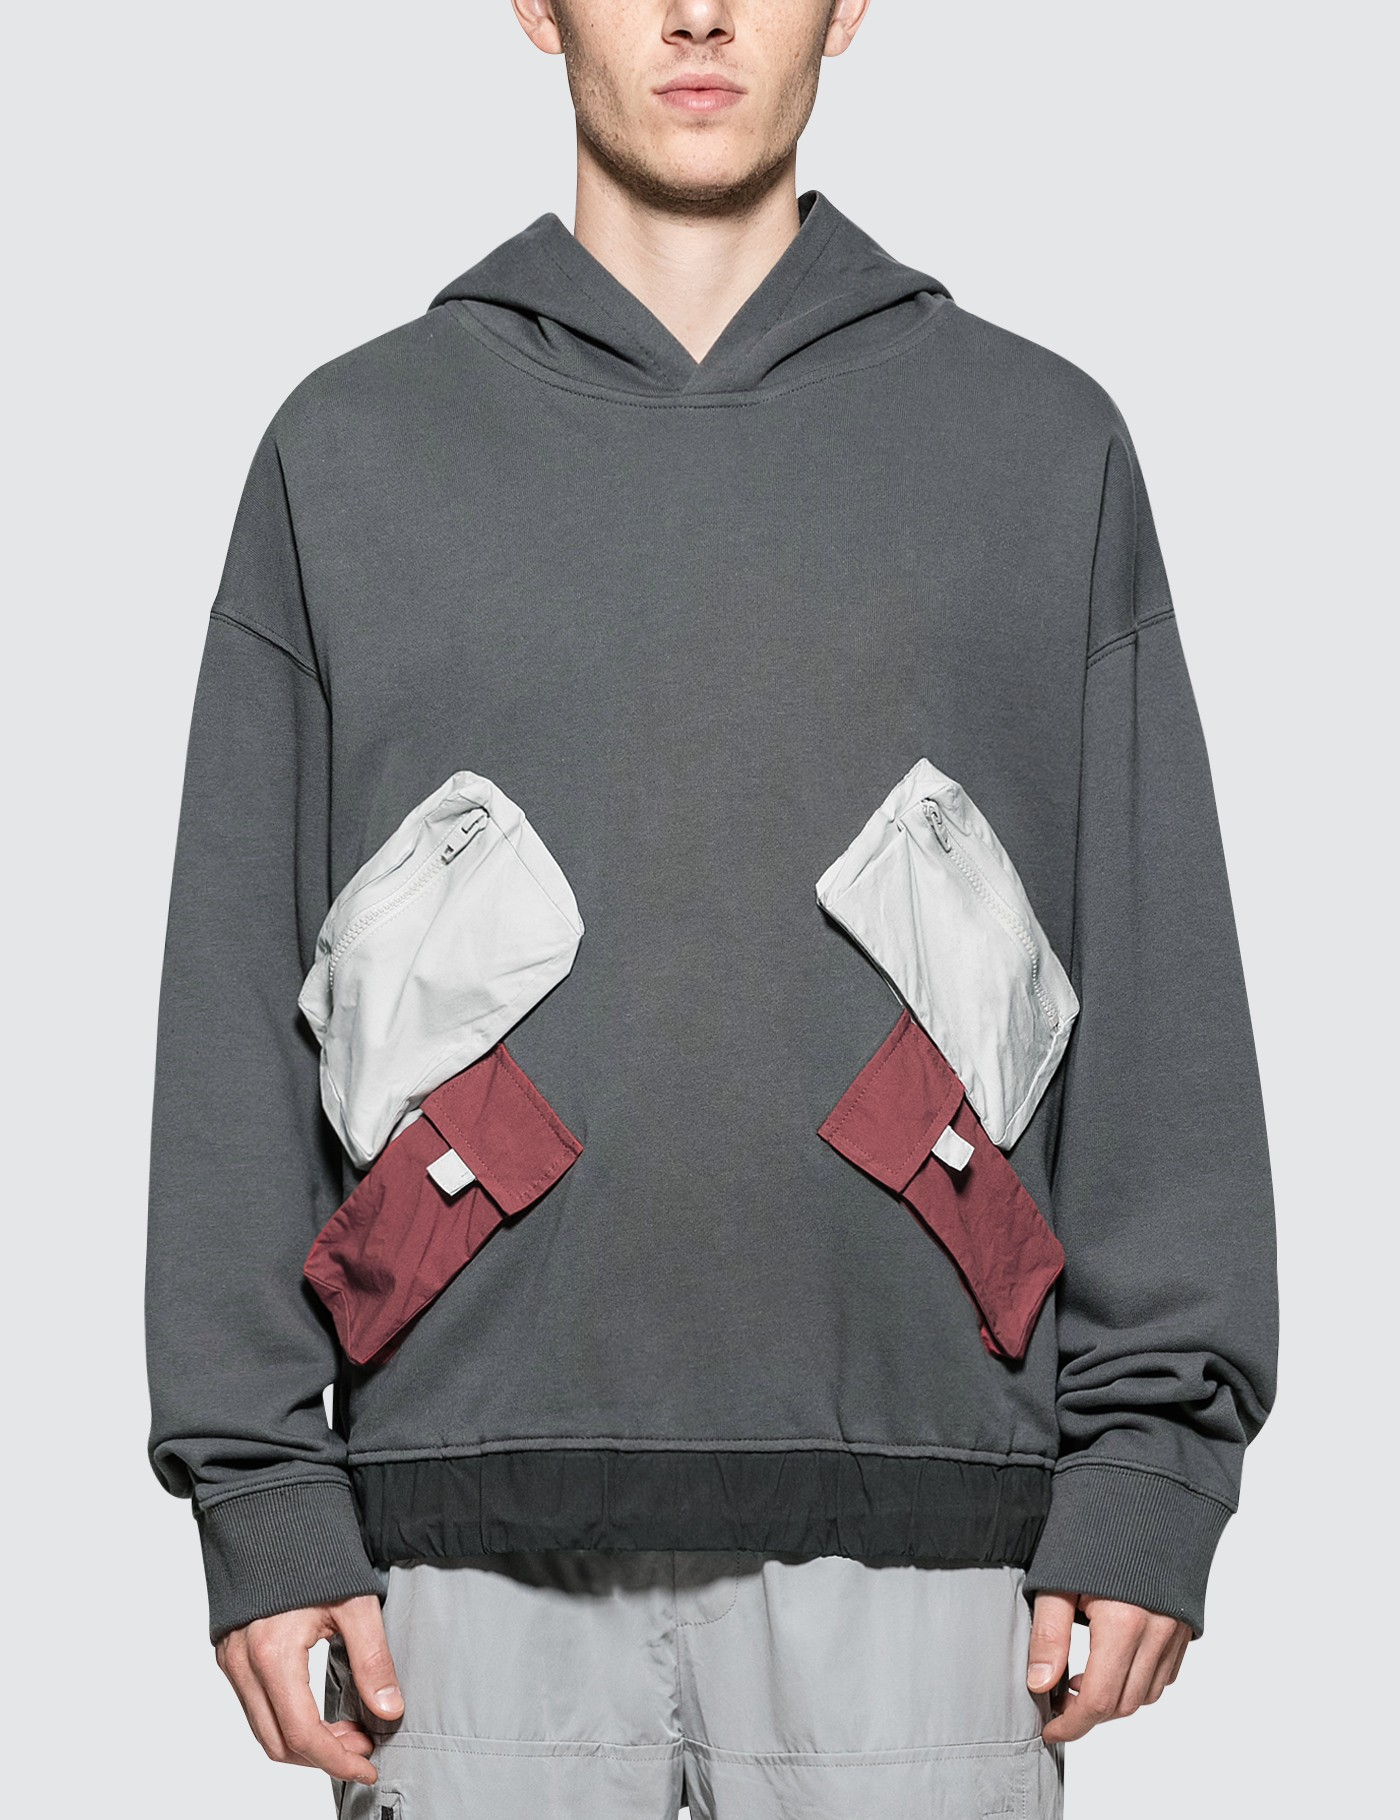 C2H4 Los Angeles Utility Multi-Pockets Data Cable Hoodie Picture